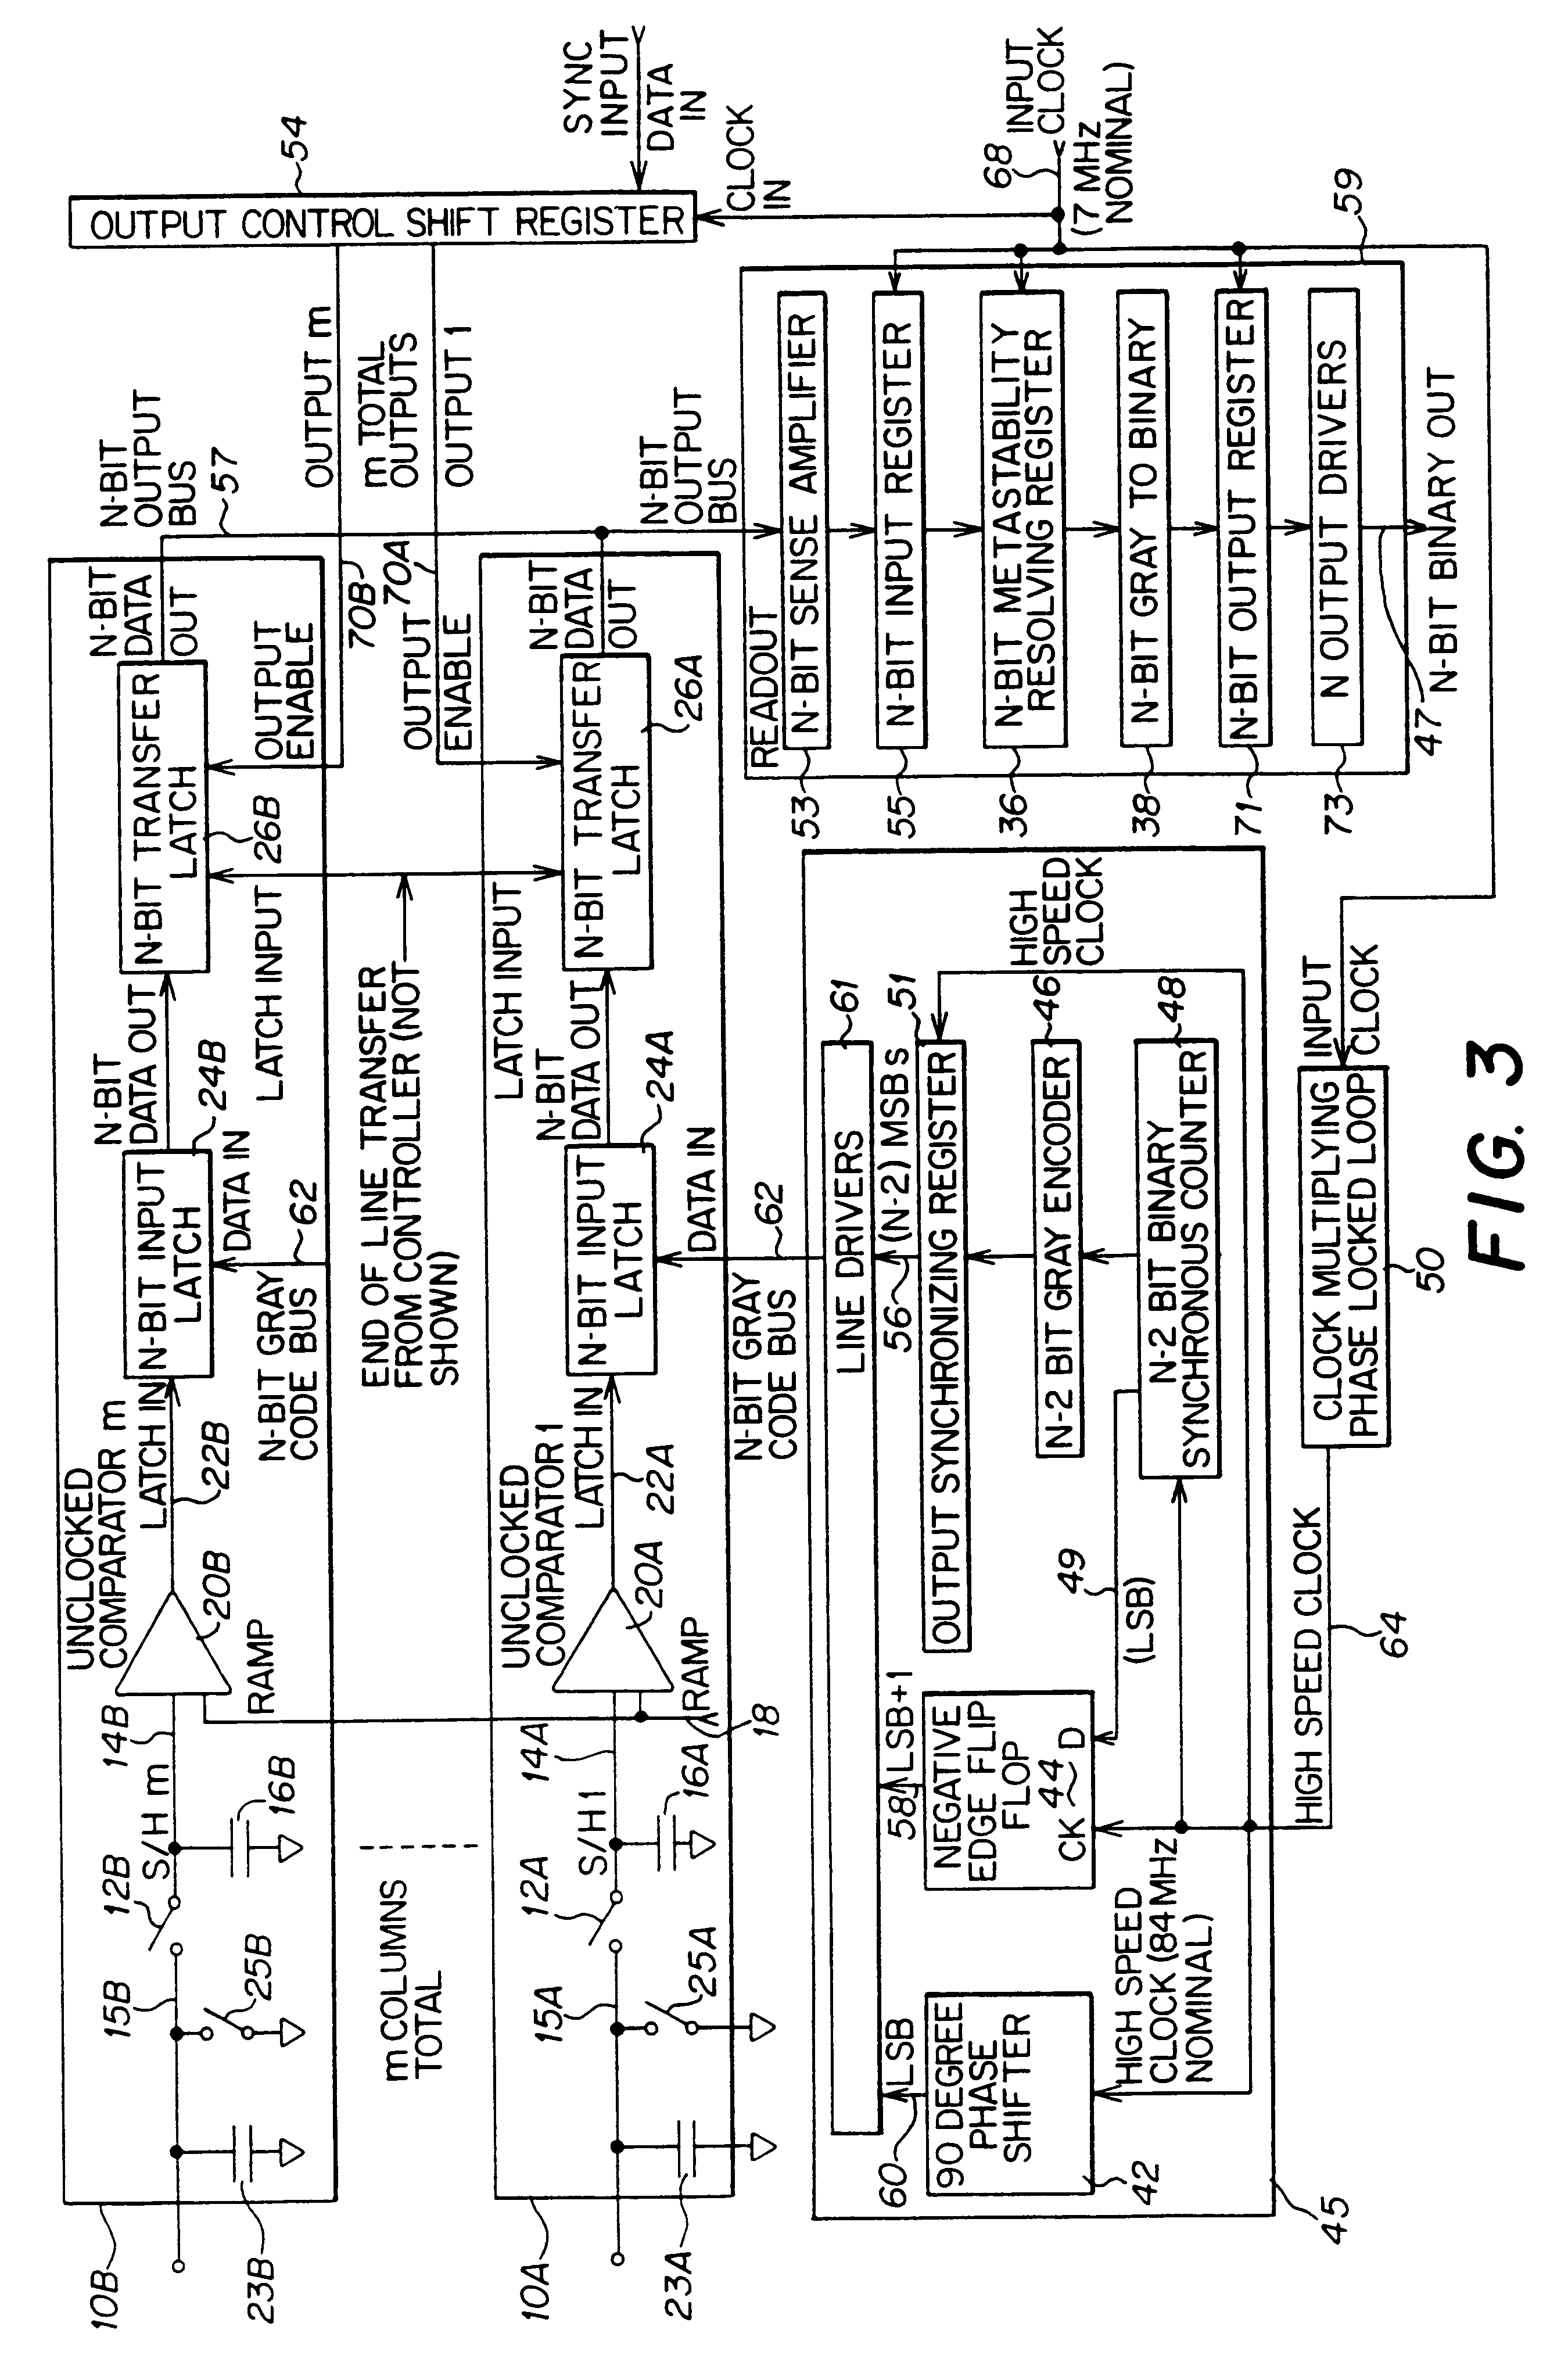 Monolithic Hybrid Digital To Analog Converters Auto Electrical Monolithichybrid Patent Us6225937